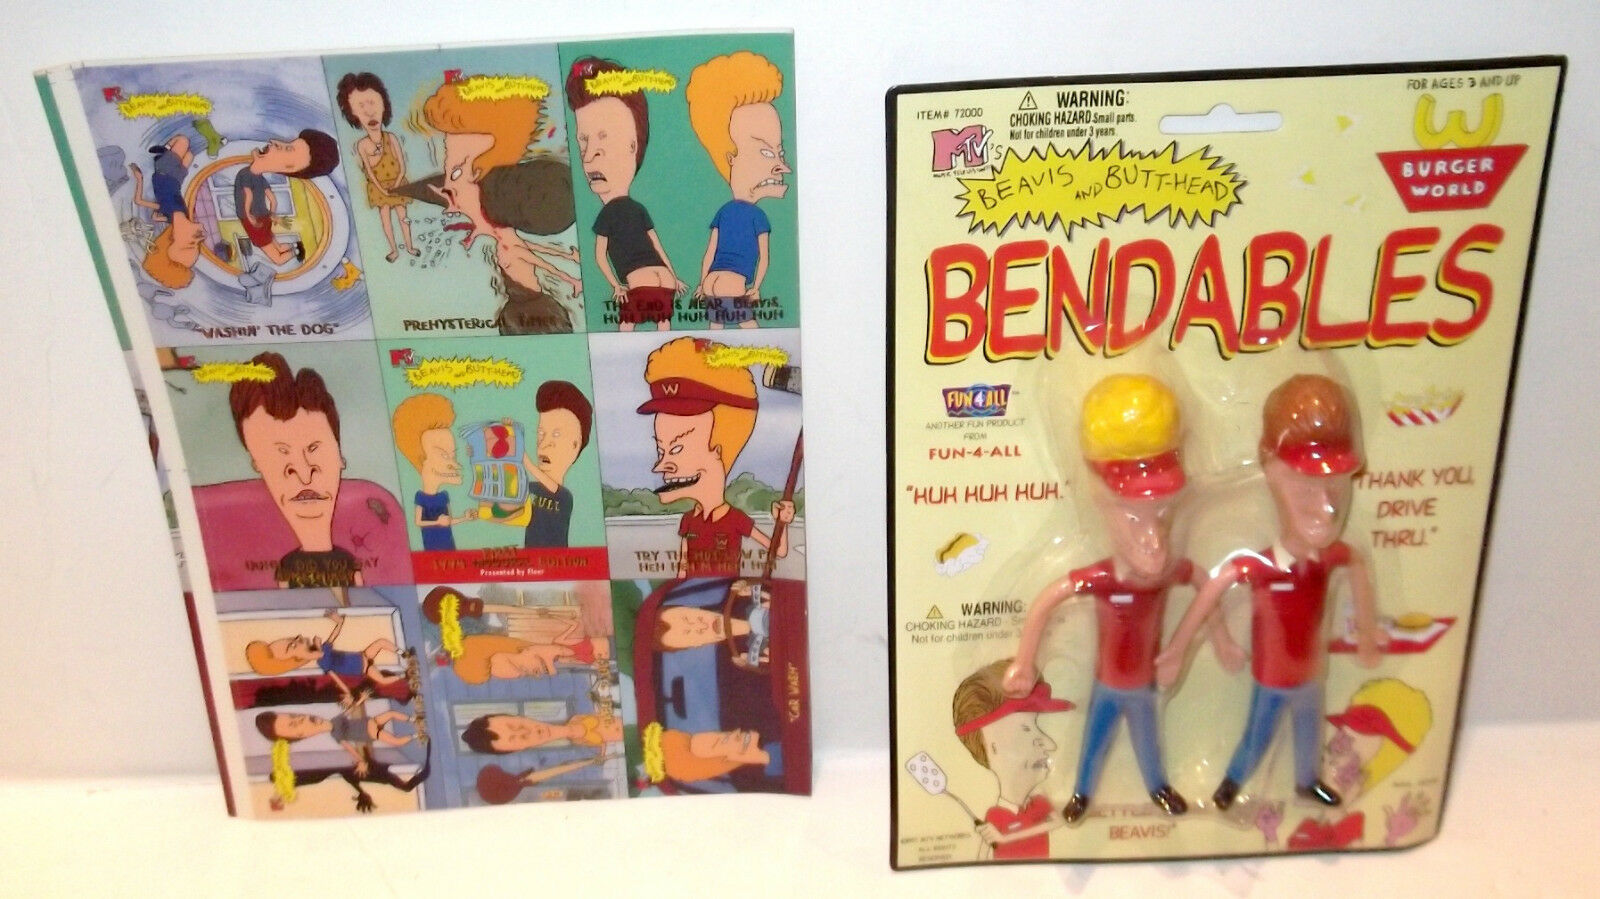 RARE ✰ 1997 Beavis Butt-head Fun4All Bendables Toy Burger World SEALED + PROMO